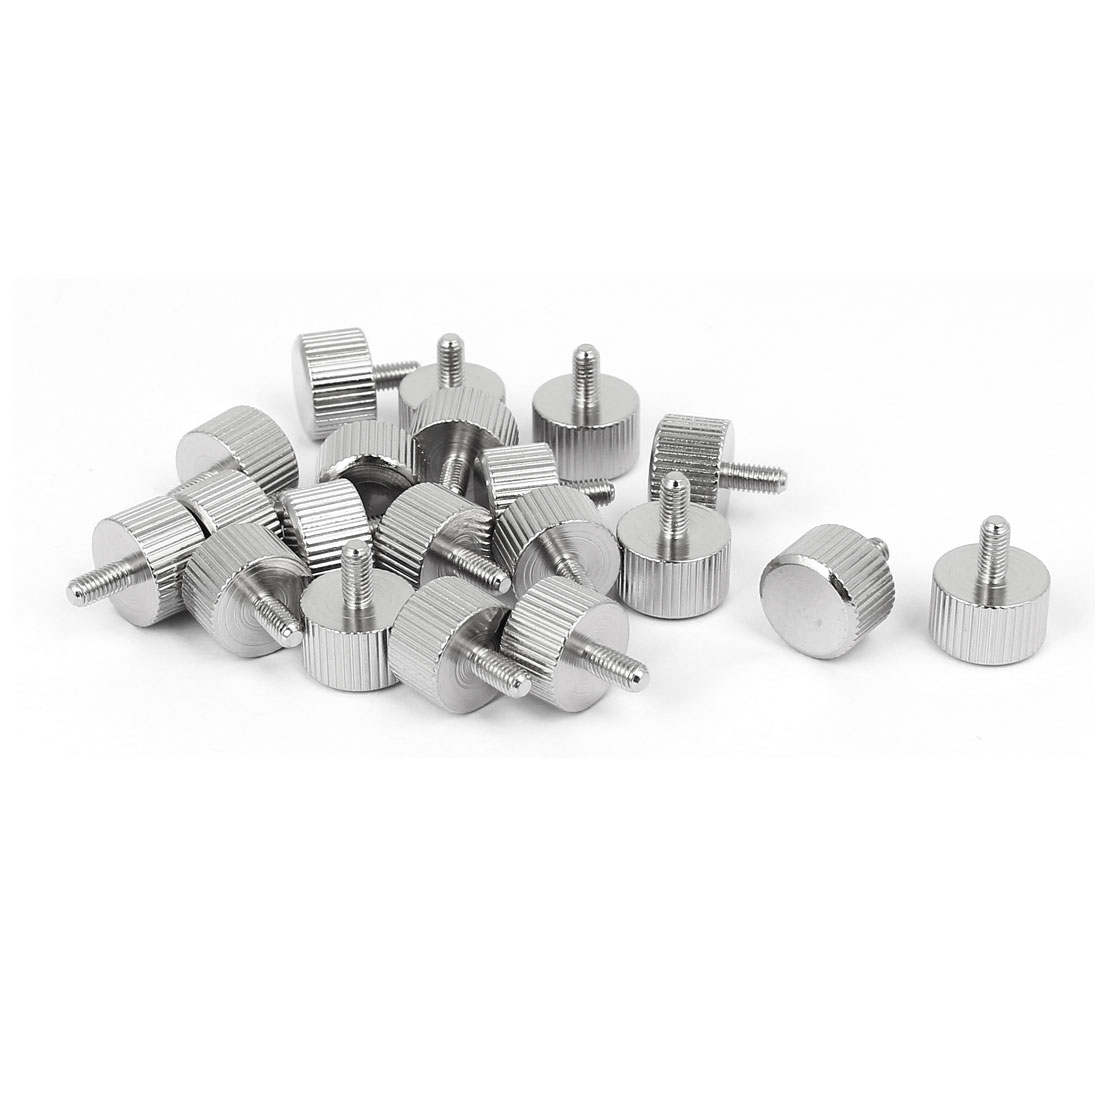 M3 x 6mm Nickel Plated Flat Head Knurled Thumb Screw 20pcs for Computer PC Case